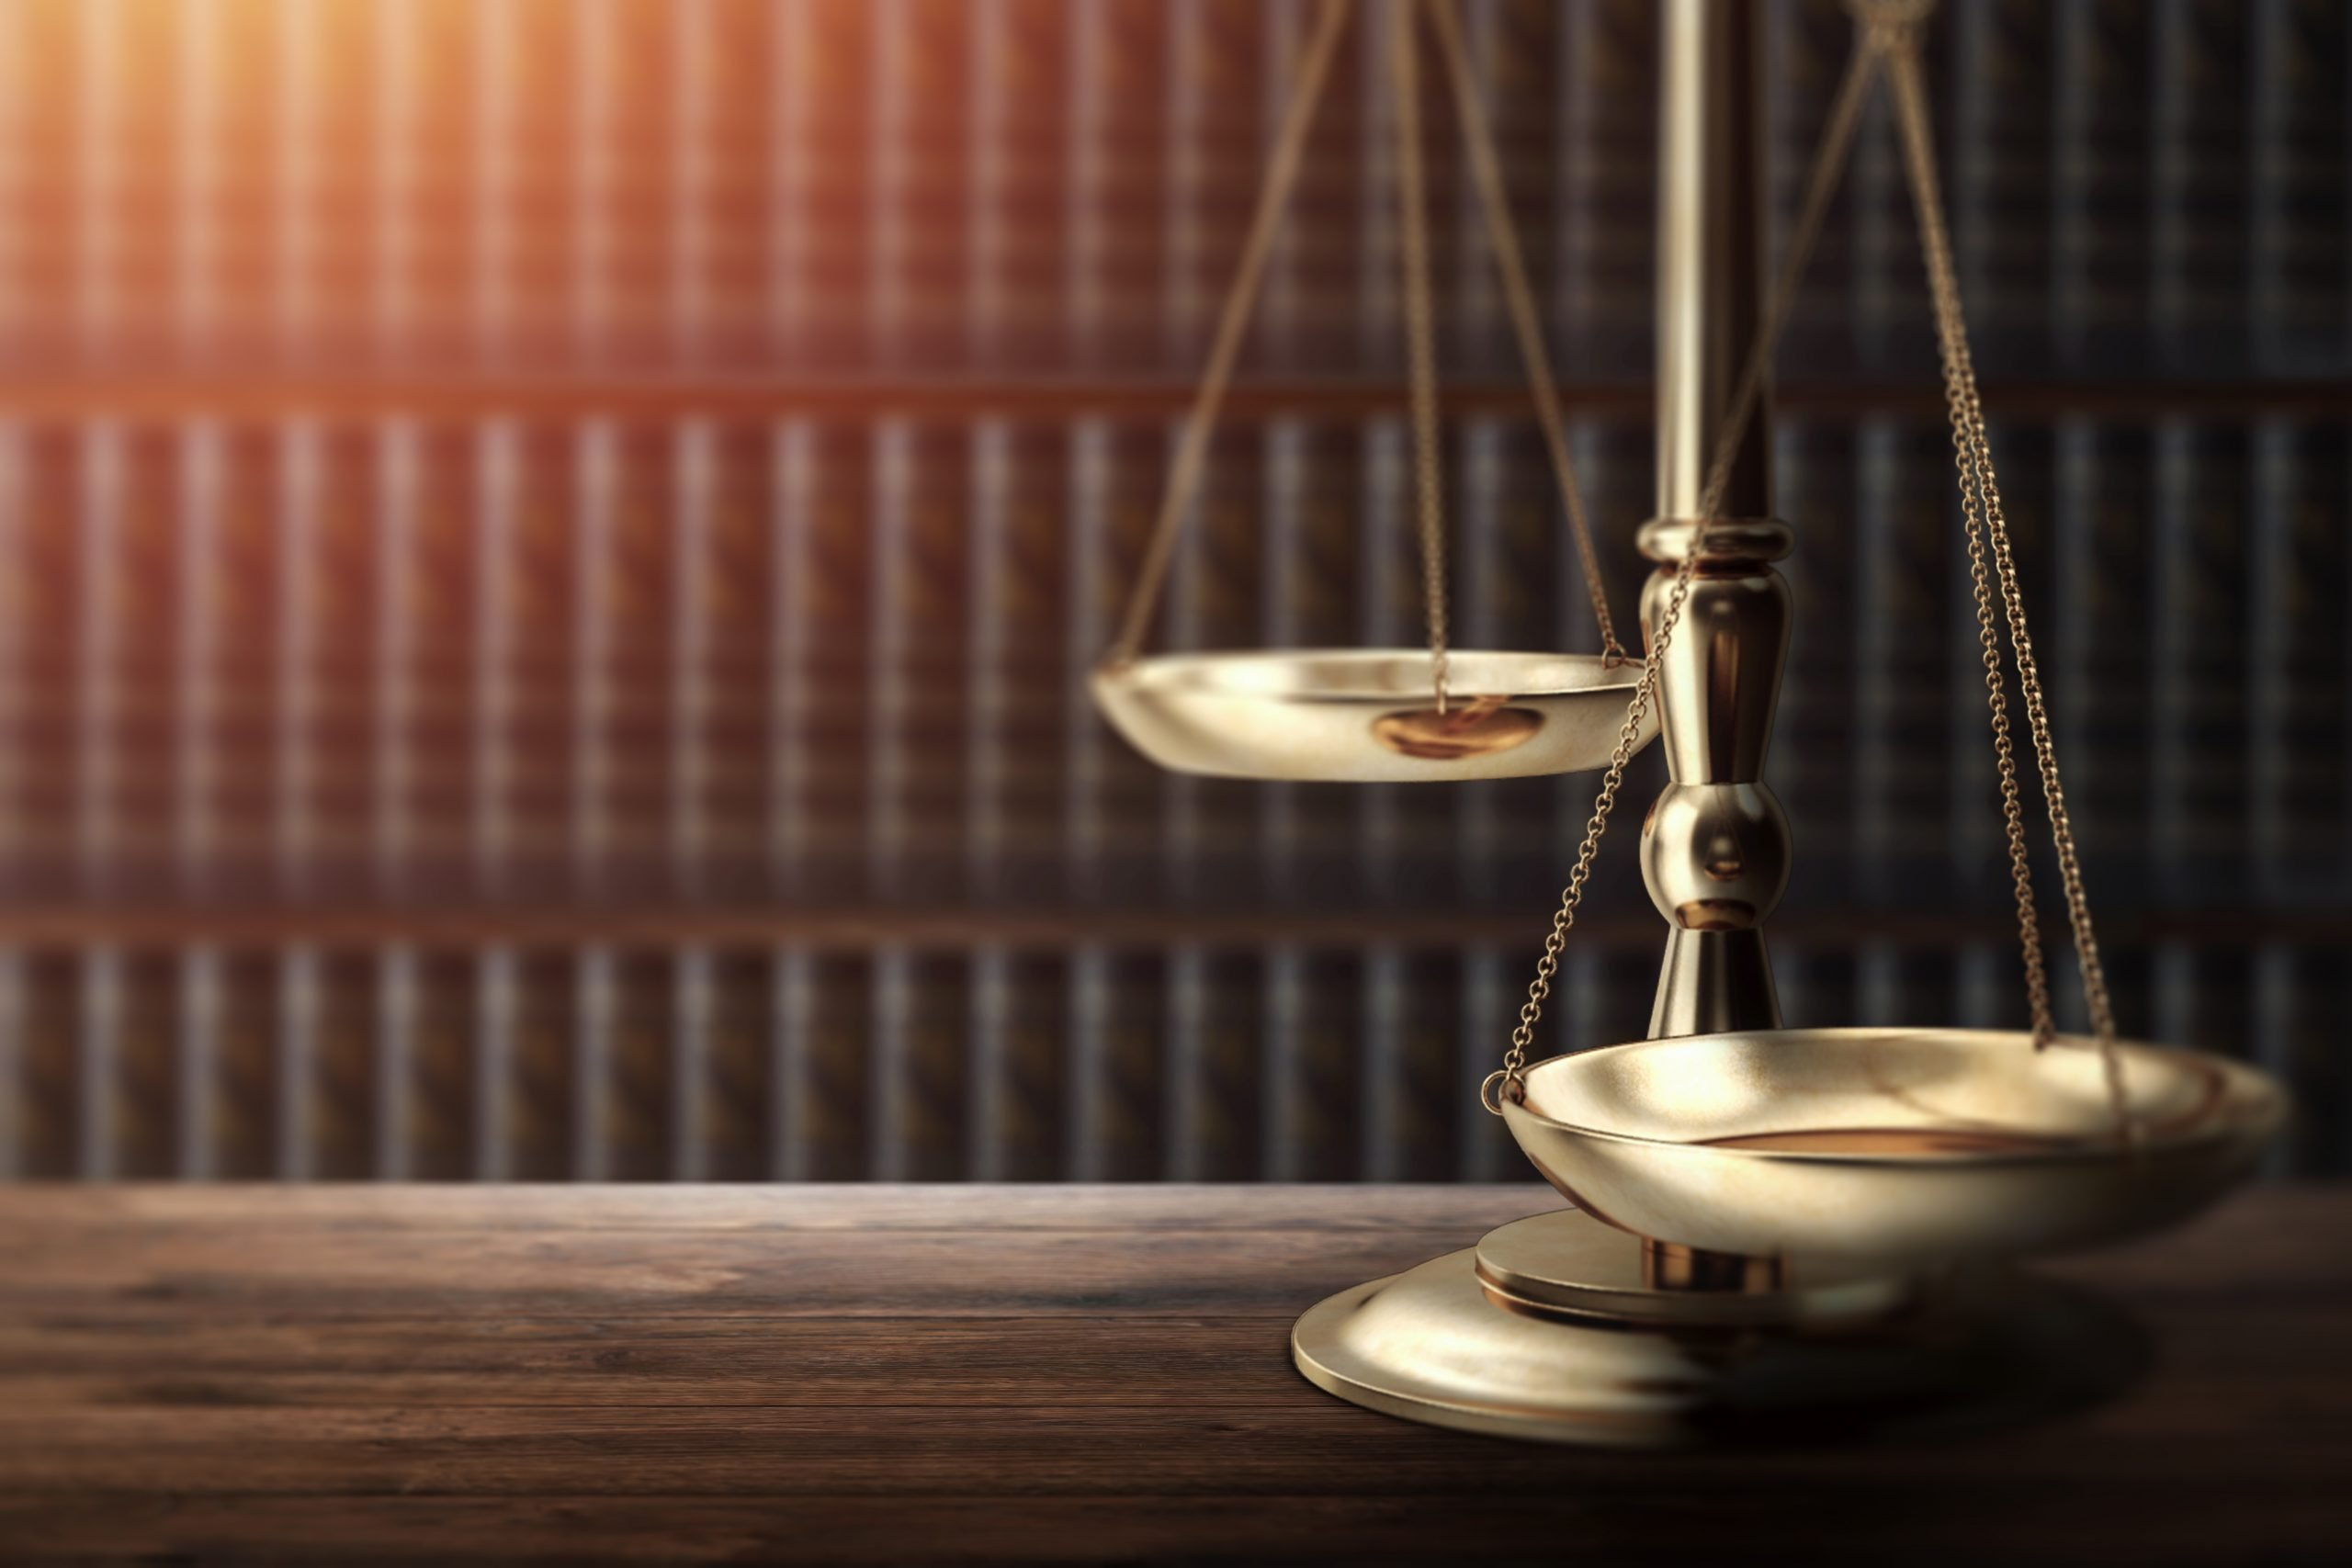 Judge's gavel on wooden background, top view. The concept of justice, punishment, judge, corrupt court.